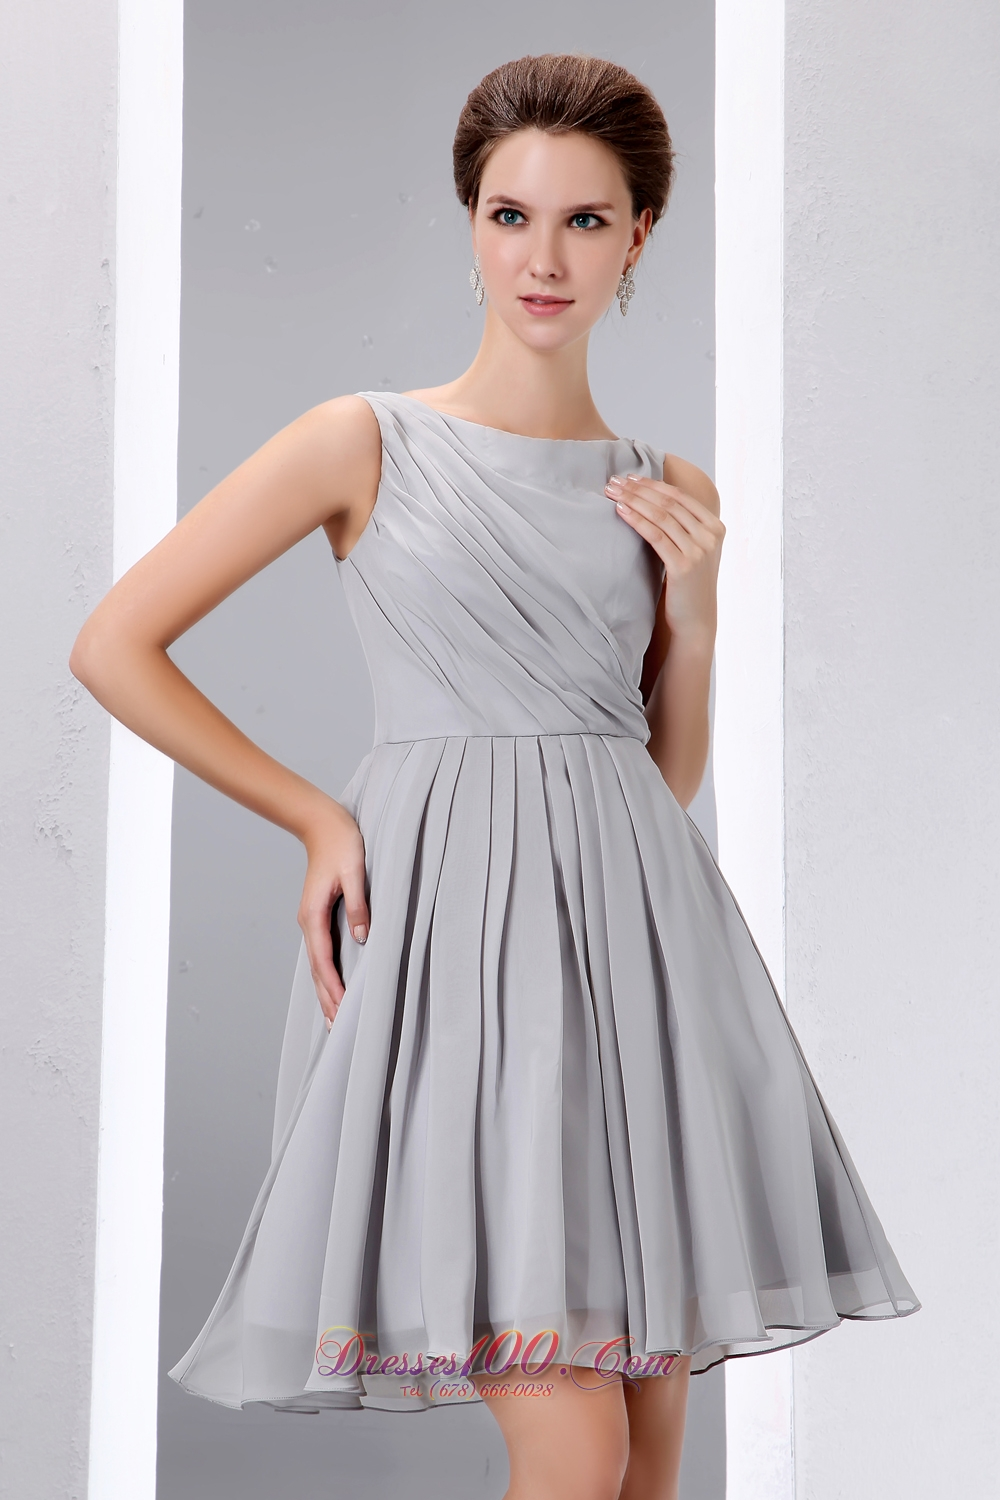 Scoop Grey Chiffon Short Ruched Cocktail Dama Dress